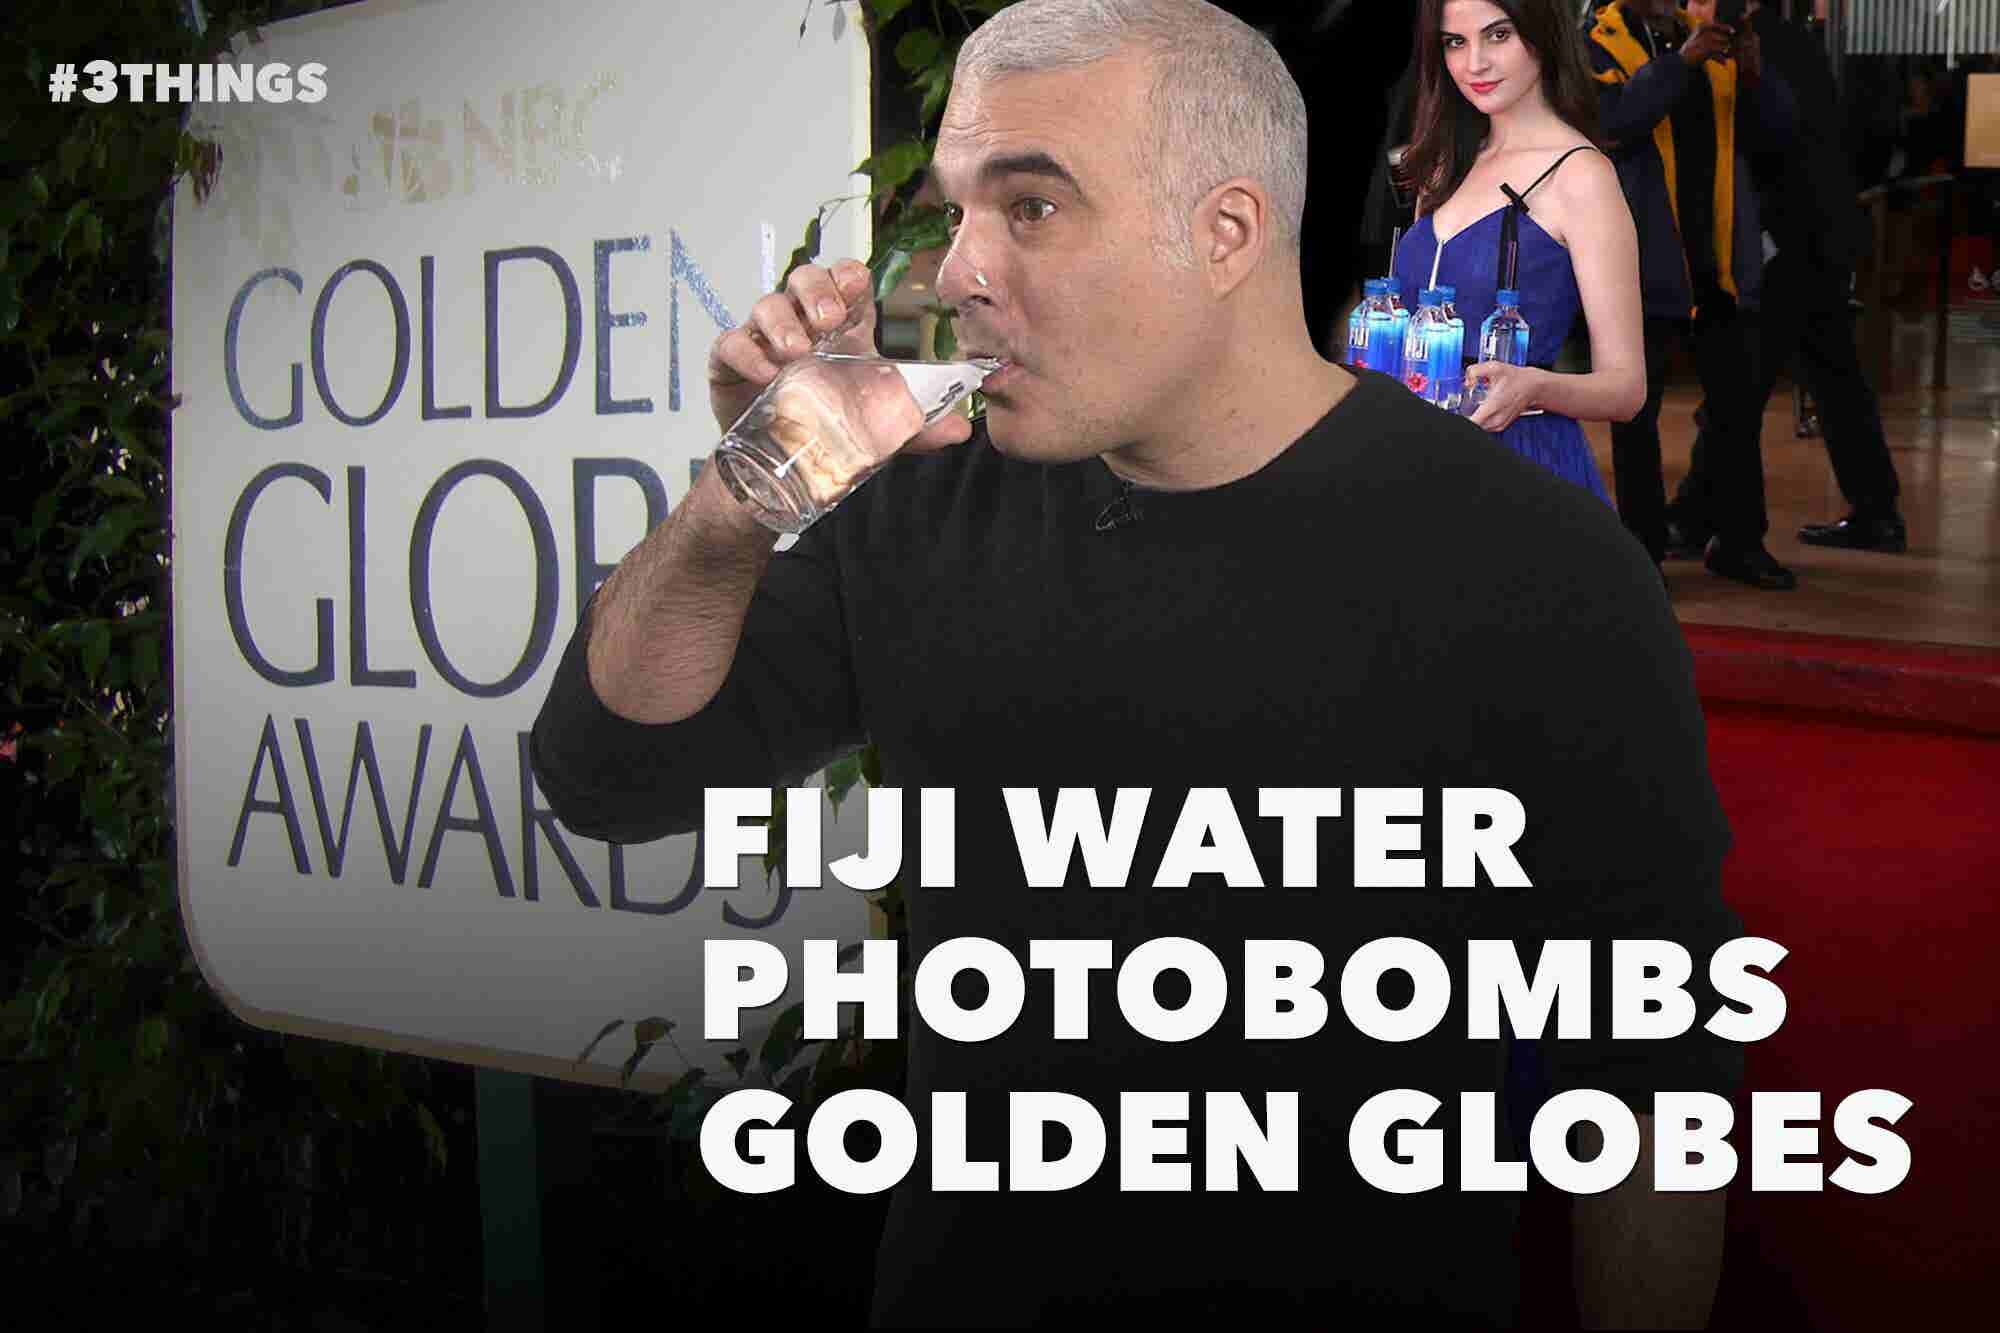 Fiji Water Photobombs Golden Globes in Spectacular Fashion (60 Second...